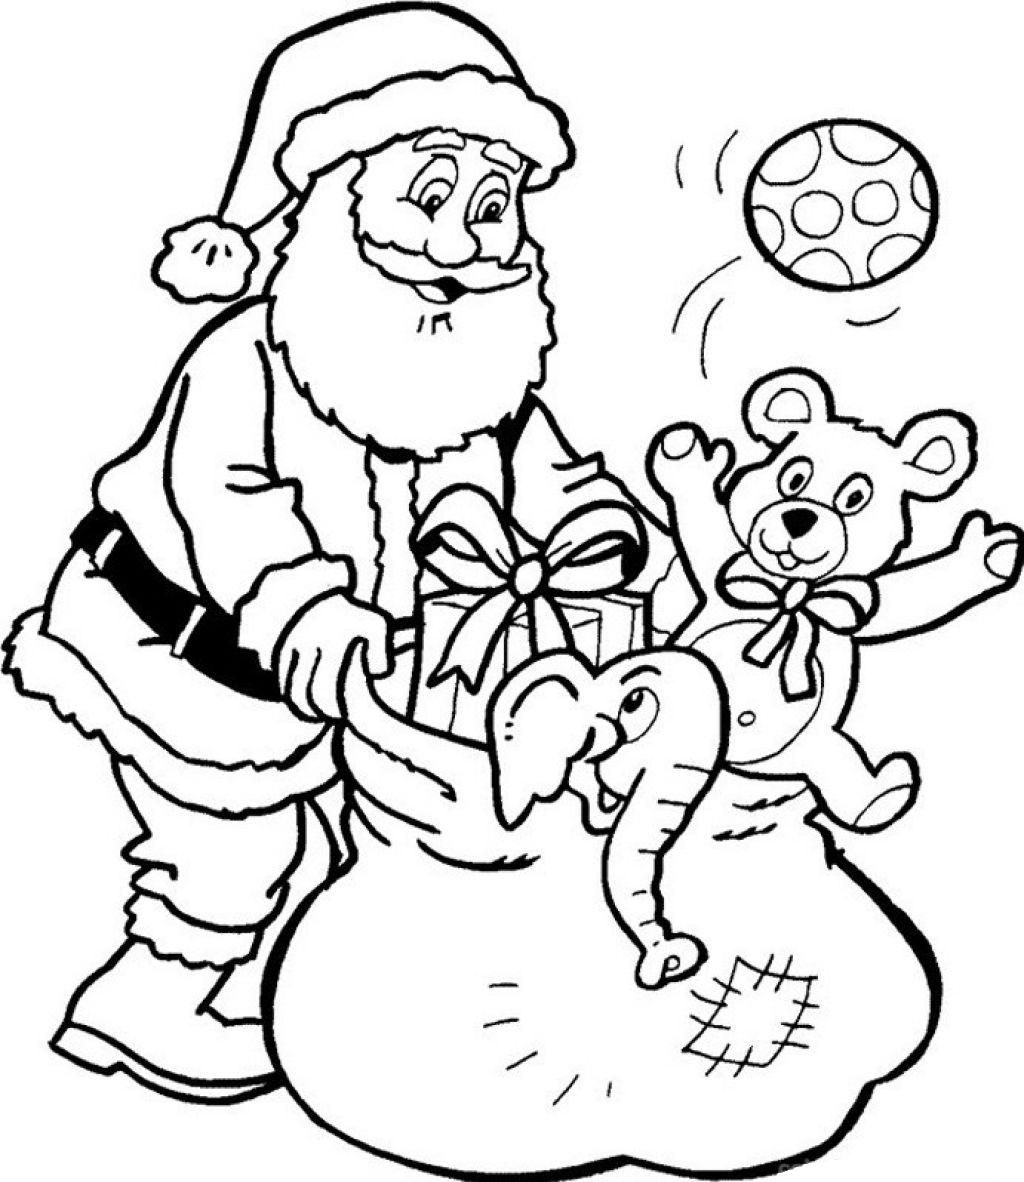 Santa Claus Coloring Face With Pages For Toddlers Childrens Merry Christmas